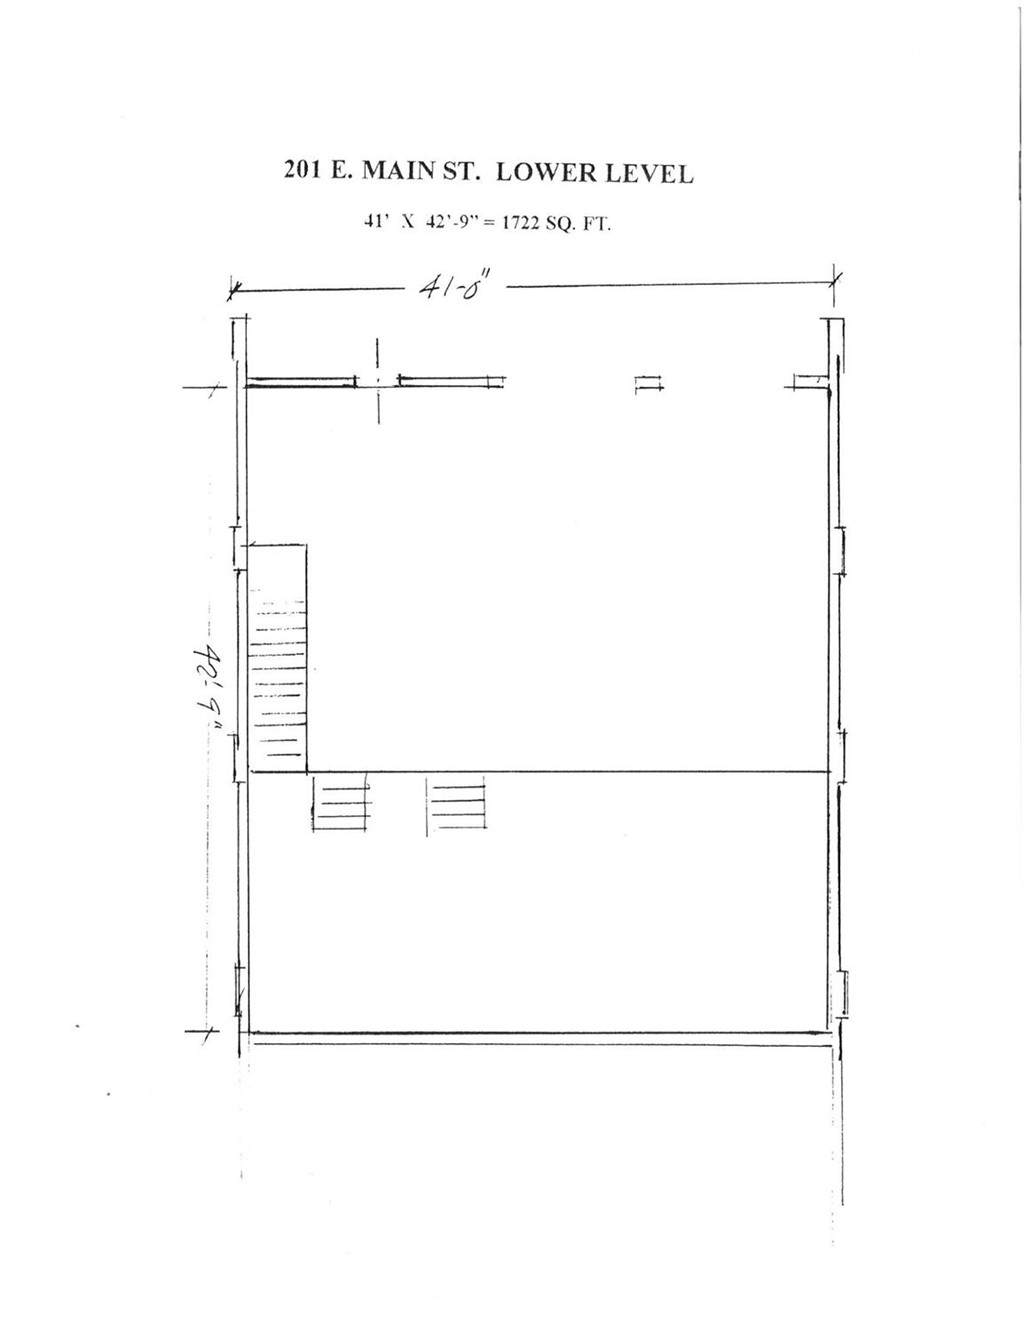 https://bt-photos.global.ssl.fastly.net/socal/orig_boomver_1_363080449-1.jpg